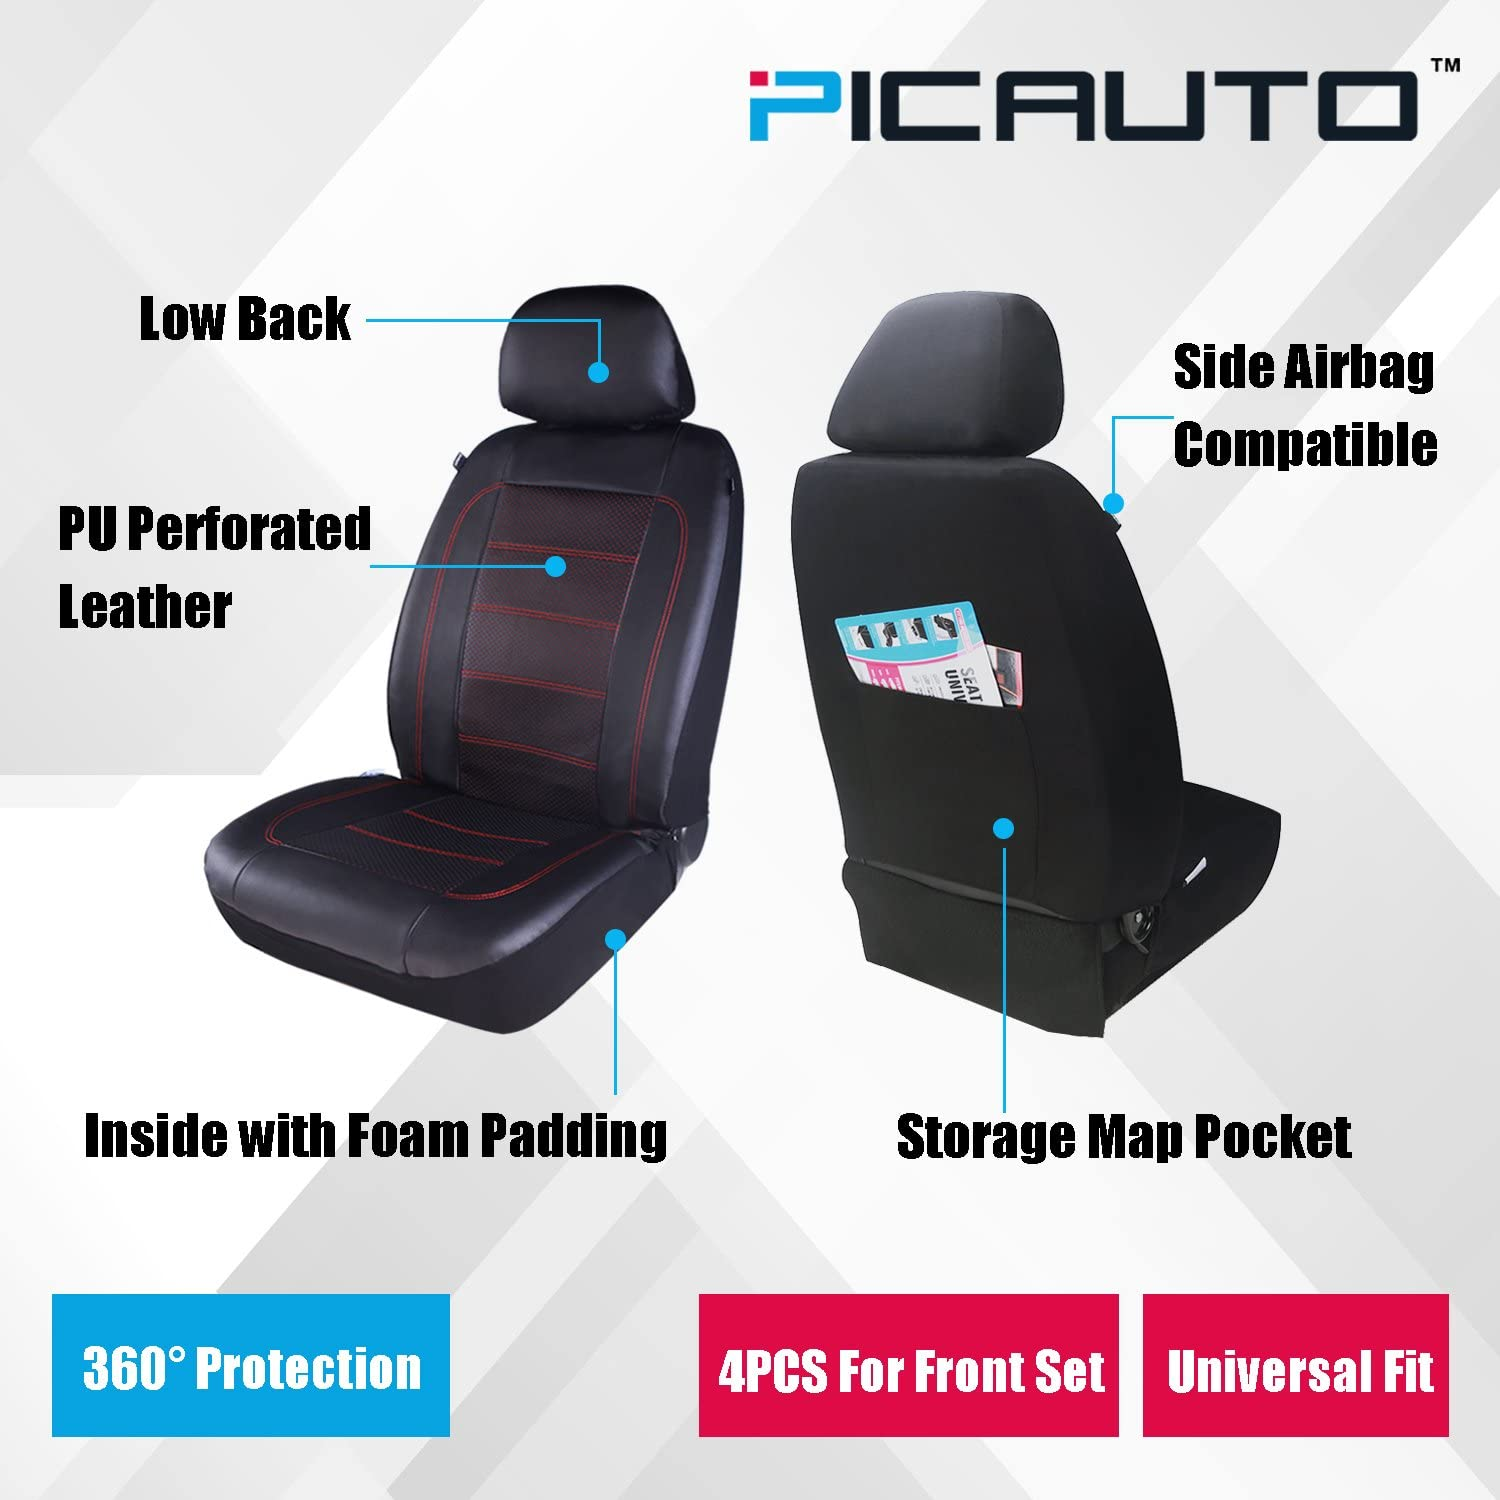 PIC AUTO Universal Front Car Seat Covers Low Back Black//Beige SUVs Trucks and Vans 3 Layered Mesh with PU Leather Airbag Compatible 4PCS Fit Most Cars Sport Seat Covers